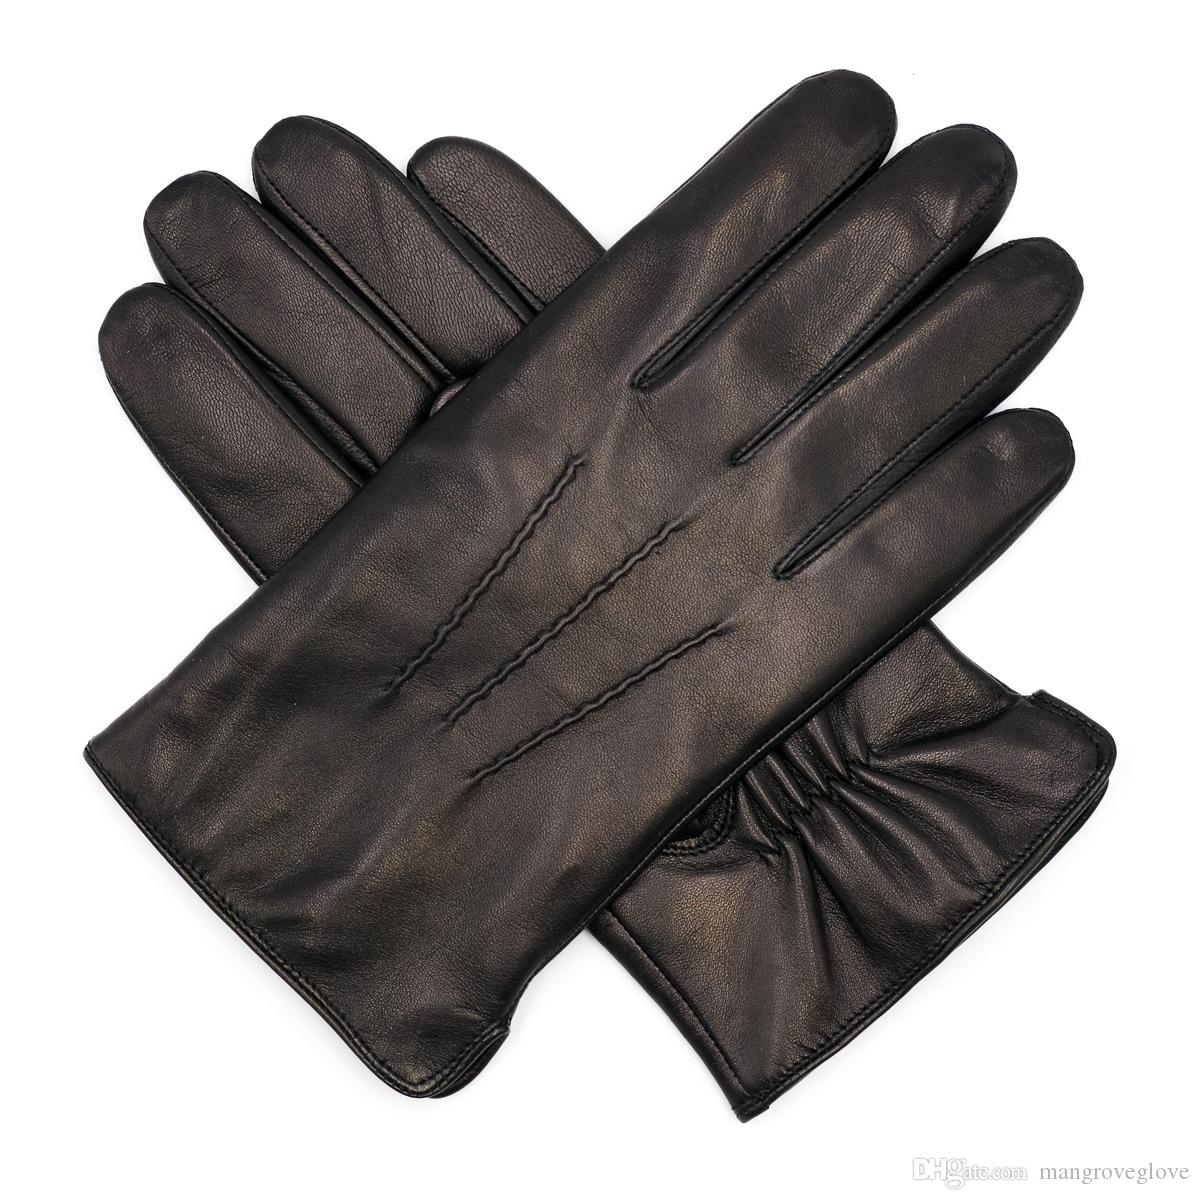 78857eea7a723 2019 High Qulity Casual Mens Luxury Italian Sheepskin Leather Gloves  Vintage Finished 100% Wool Lined Winter Black From Mangroveglove, $27.13 |  DHgate.Com